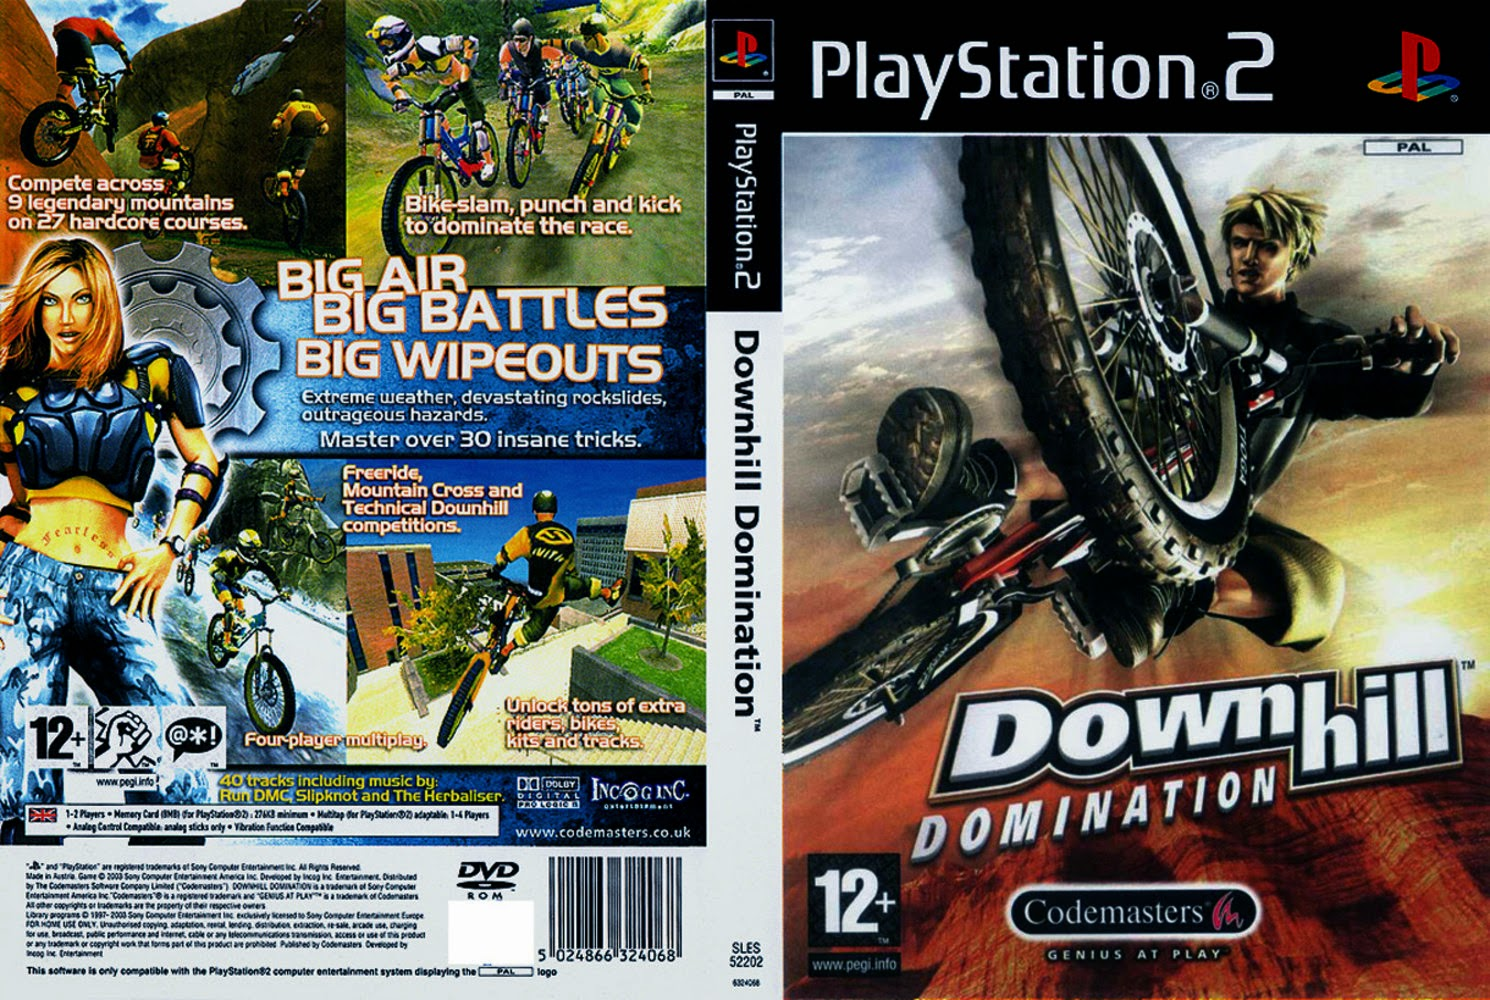 Downhill domination ps2 review